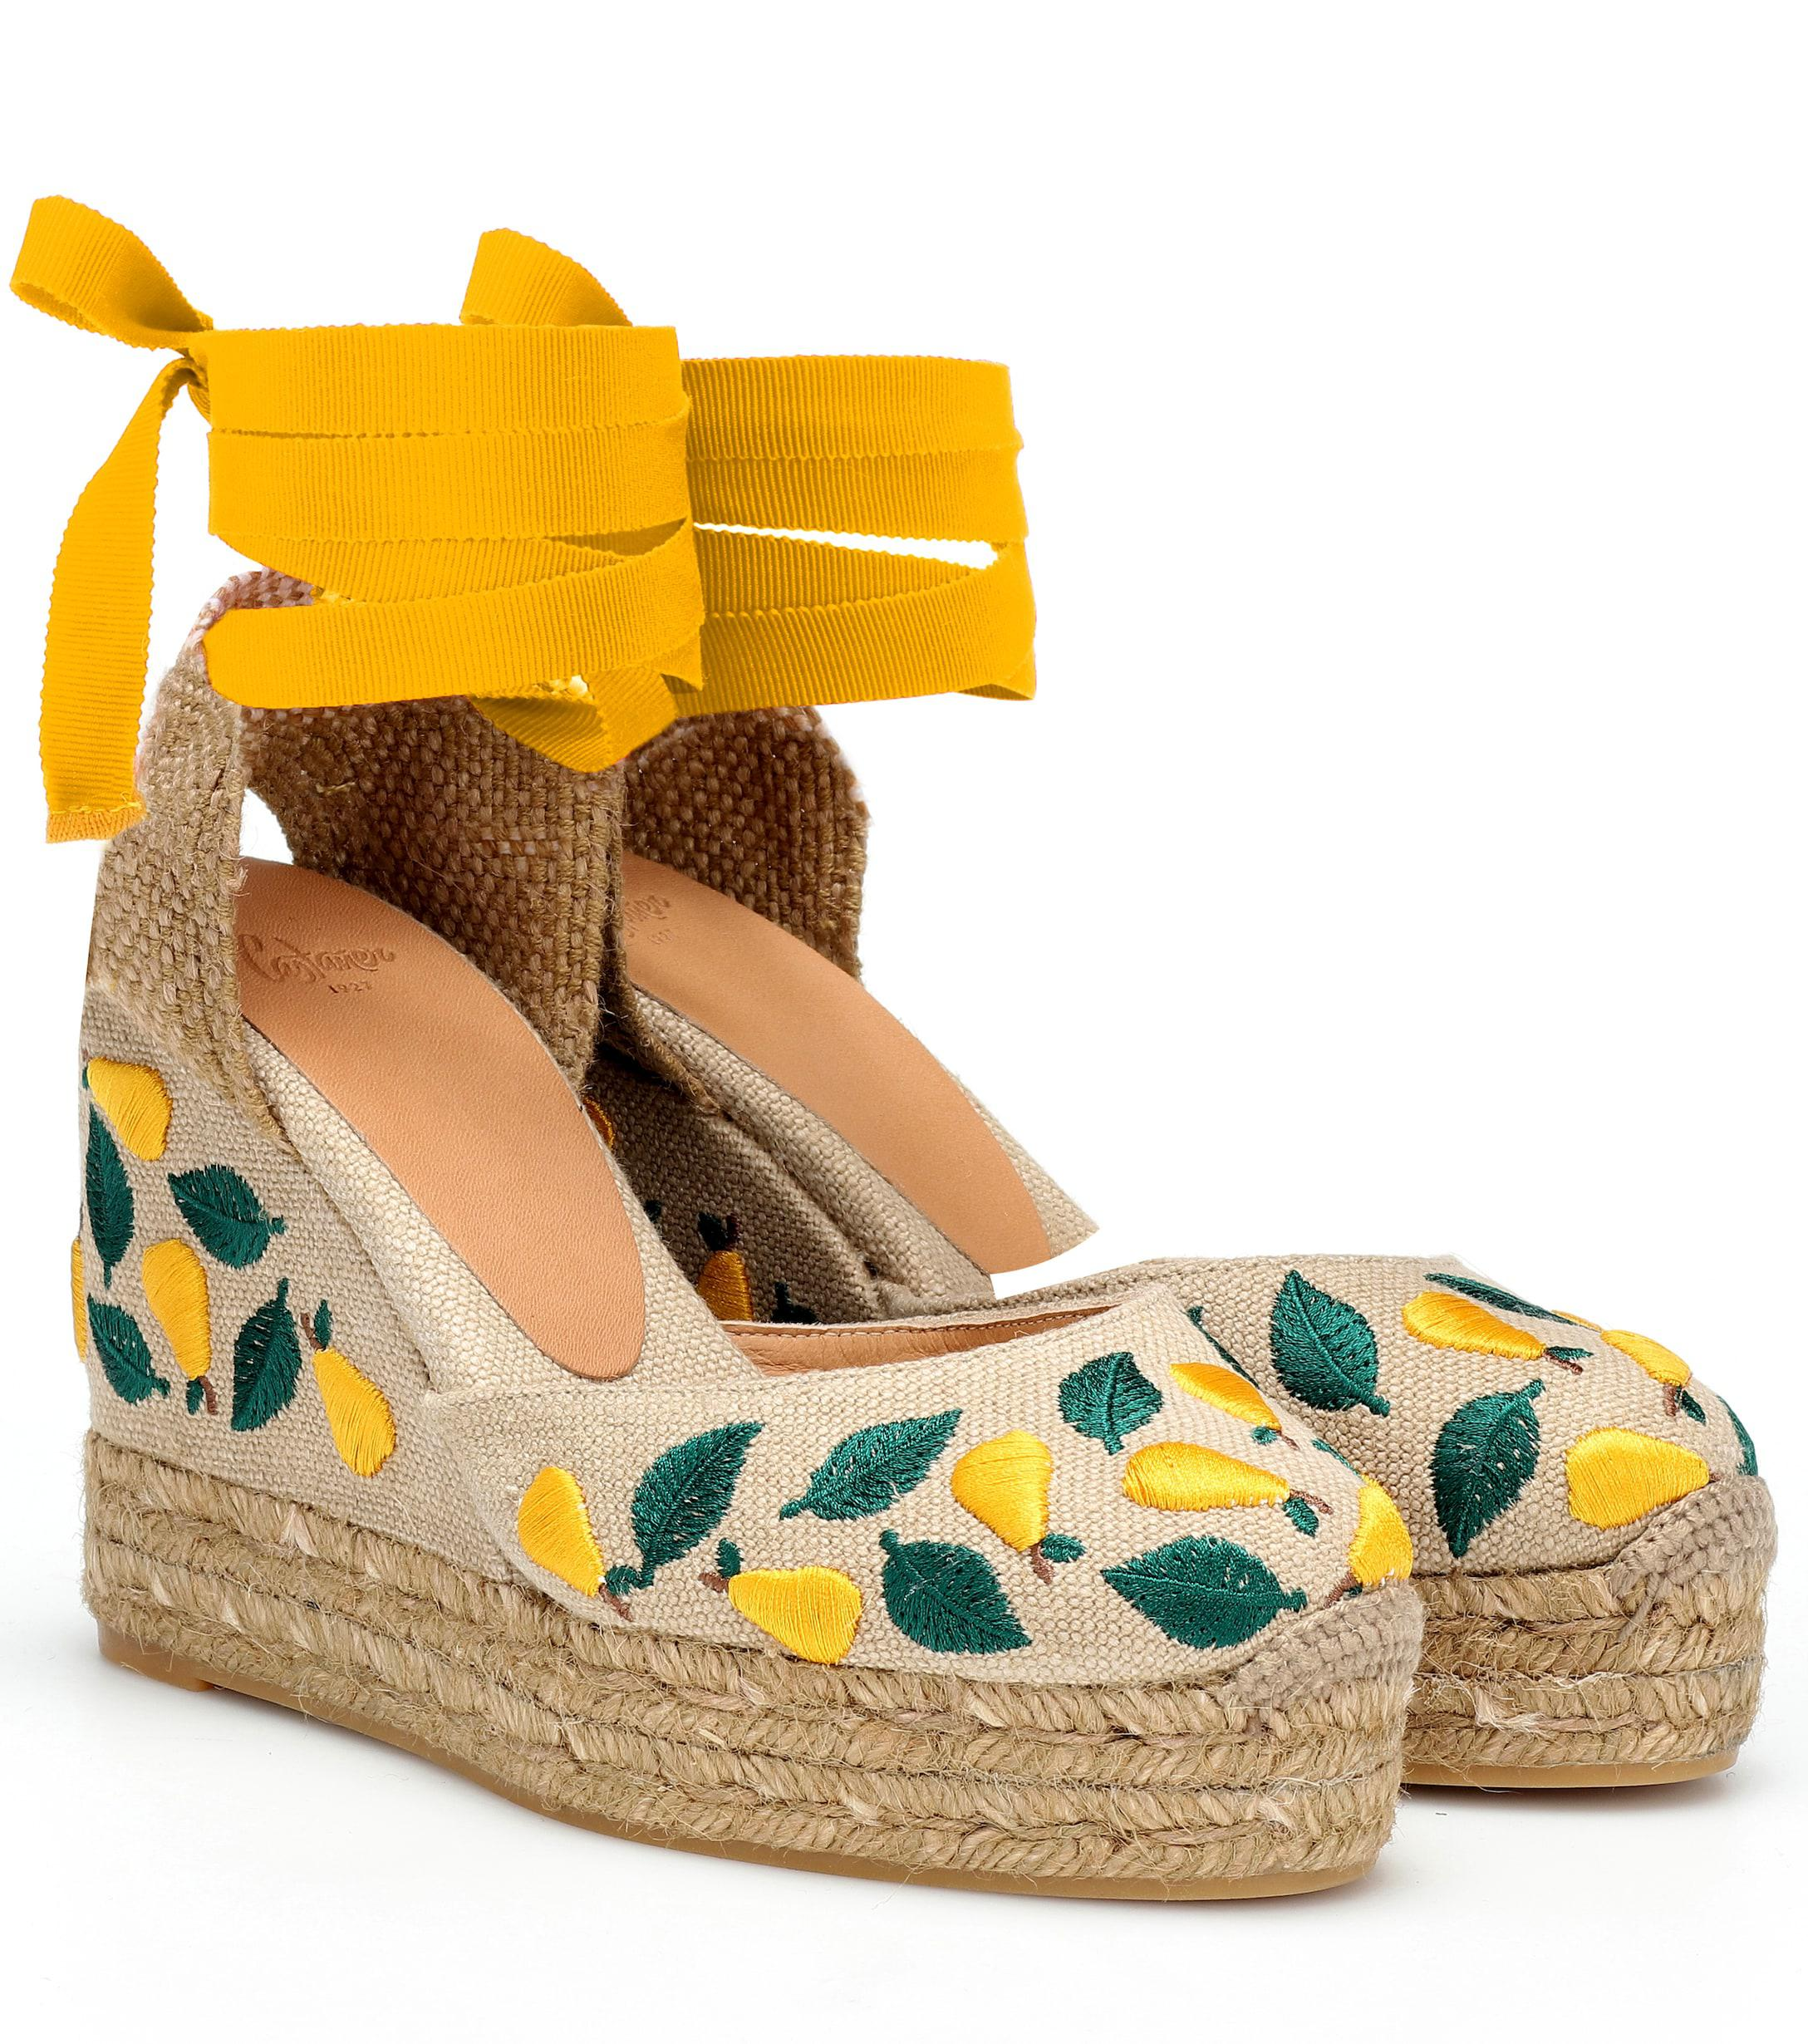 1755076230e2e8 Lyst - Castaner Carina Embroidered Wedge Espadrilles in Yellow ...